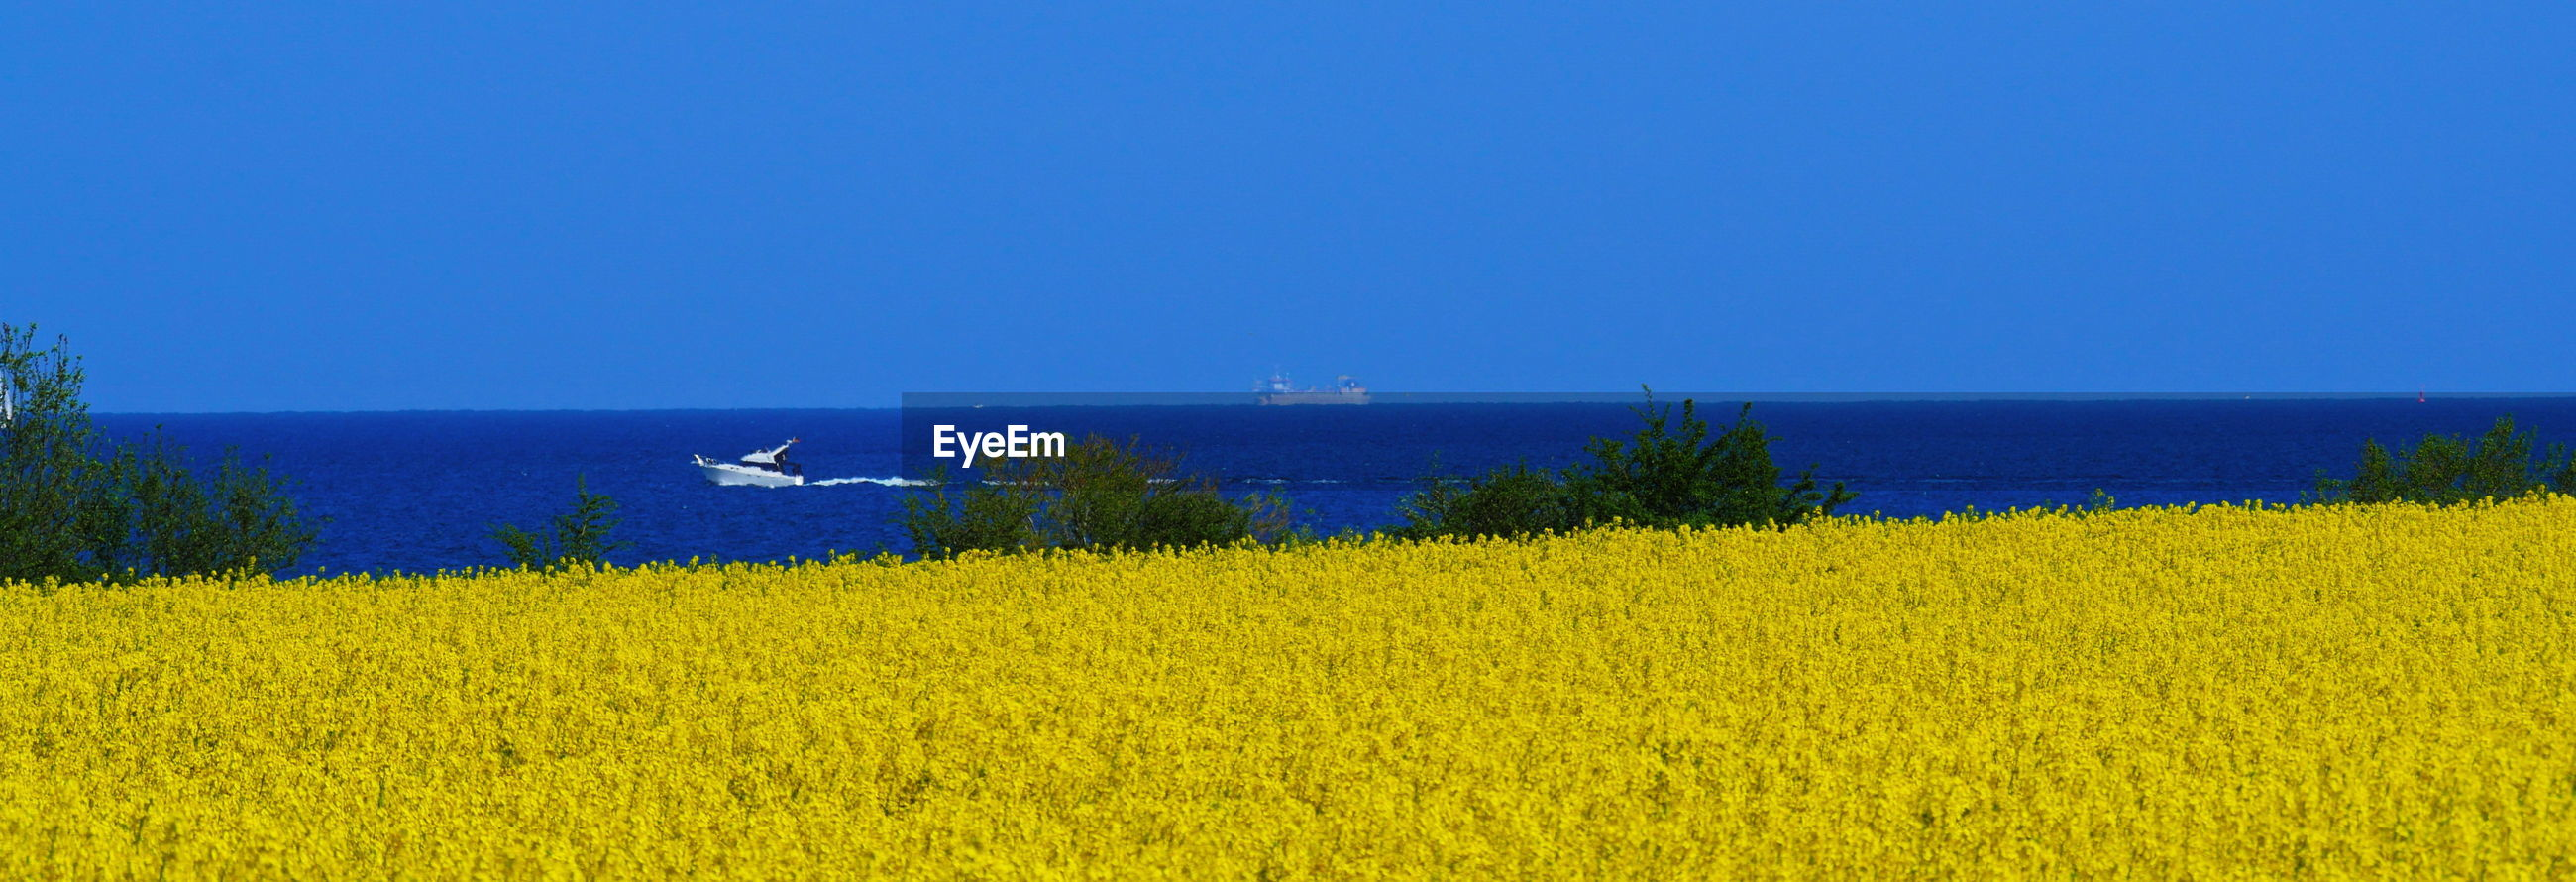 SCENIC VIEW OF YELLOW FLOWERS ON FIELD AGAINST SKY